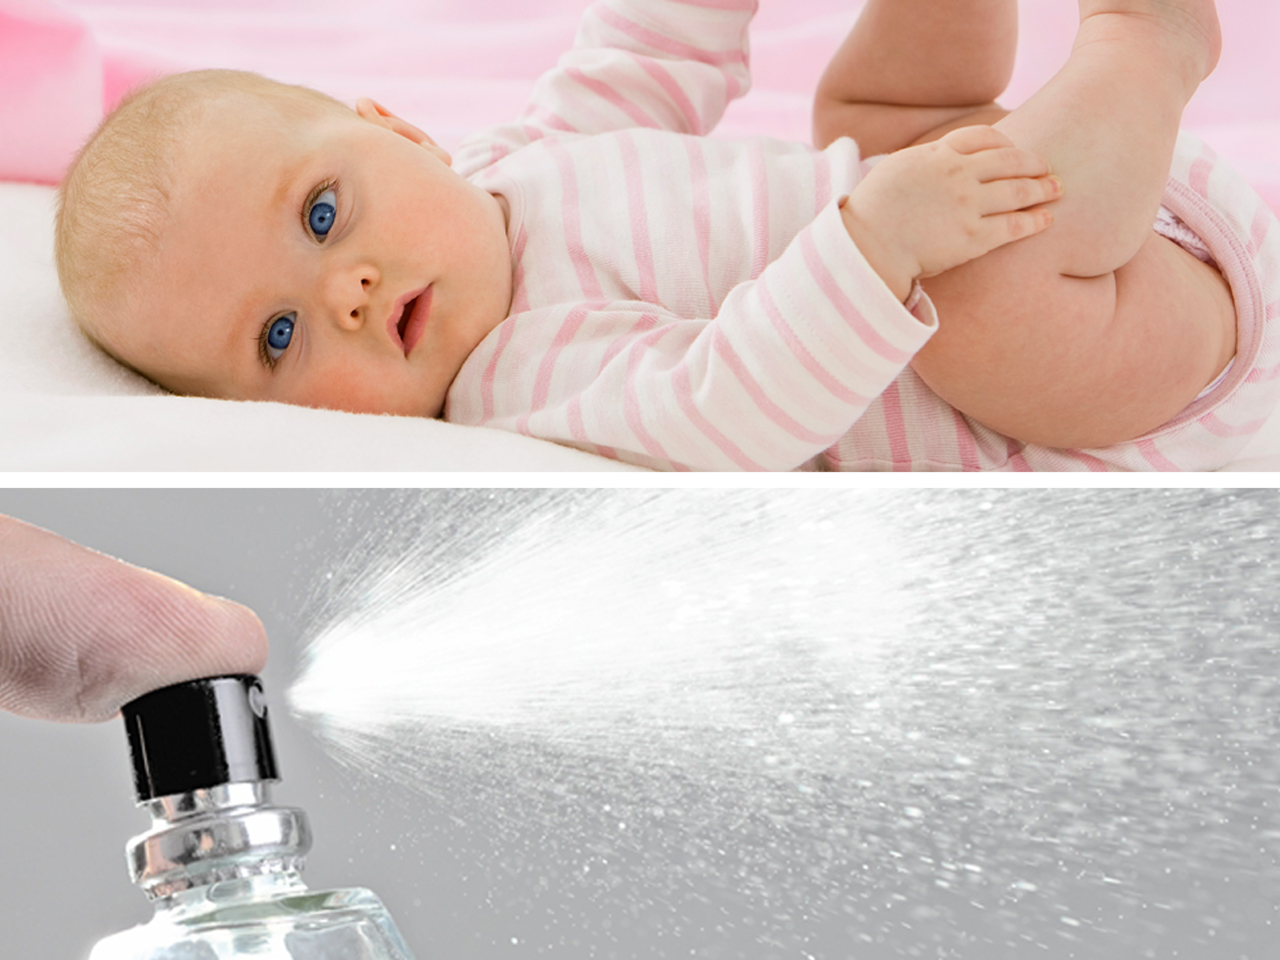 baby perfumes clean smelling perfume like soap clean shower fresh perfume what perfume smells like soap